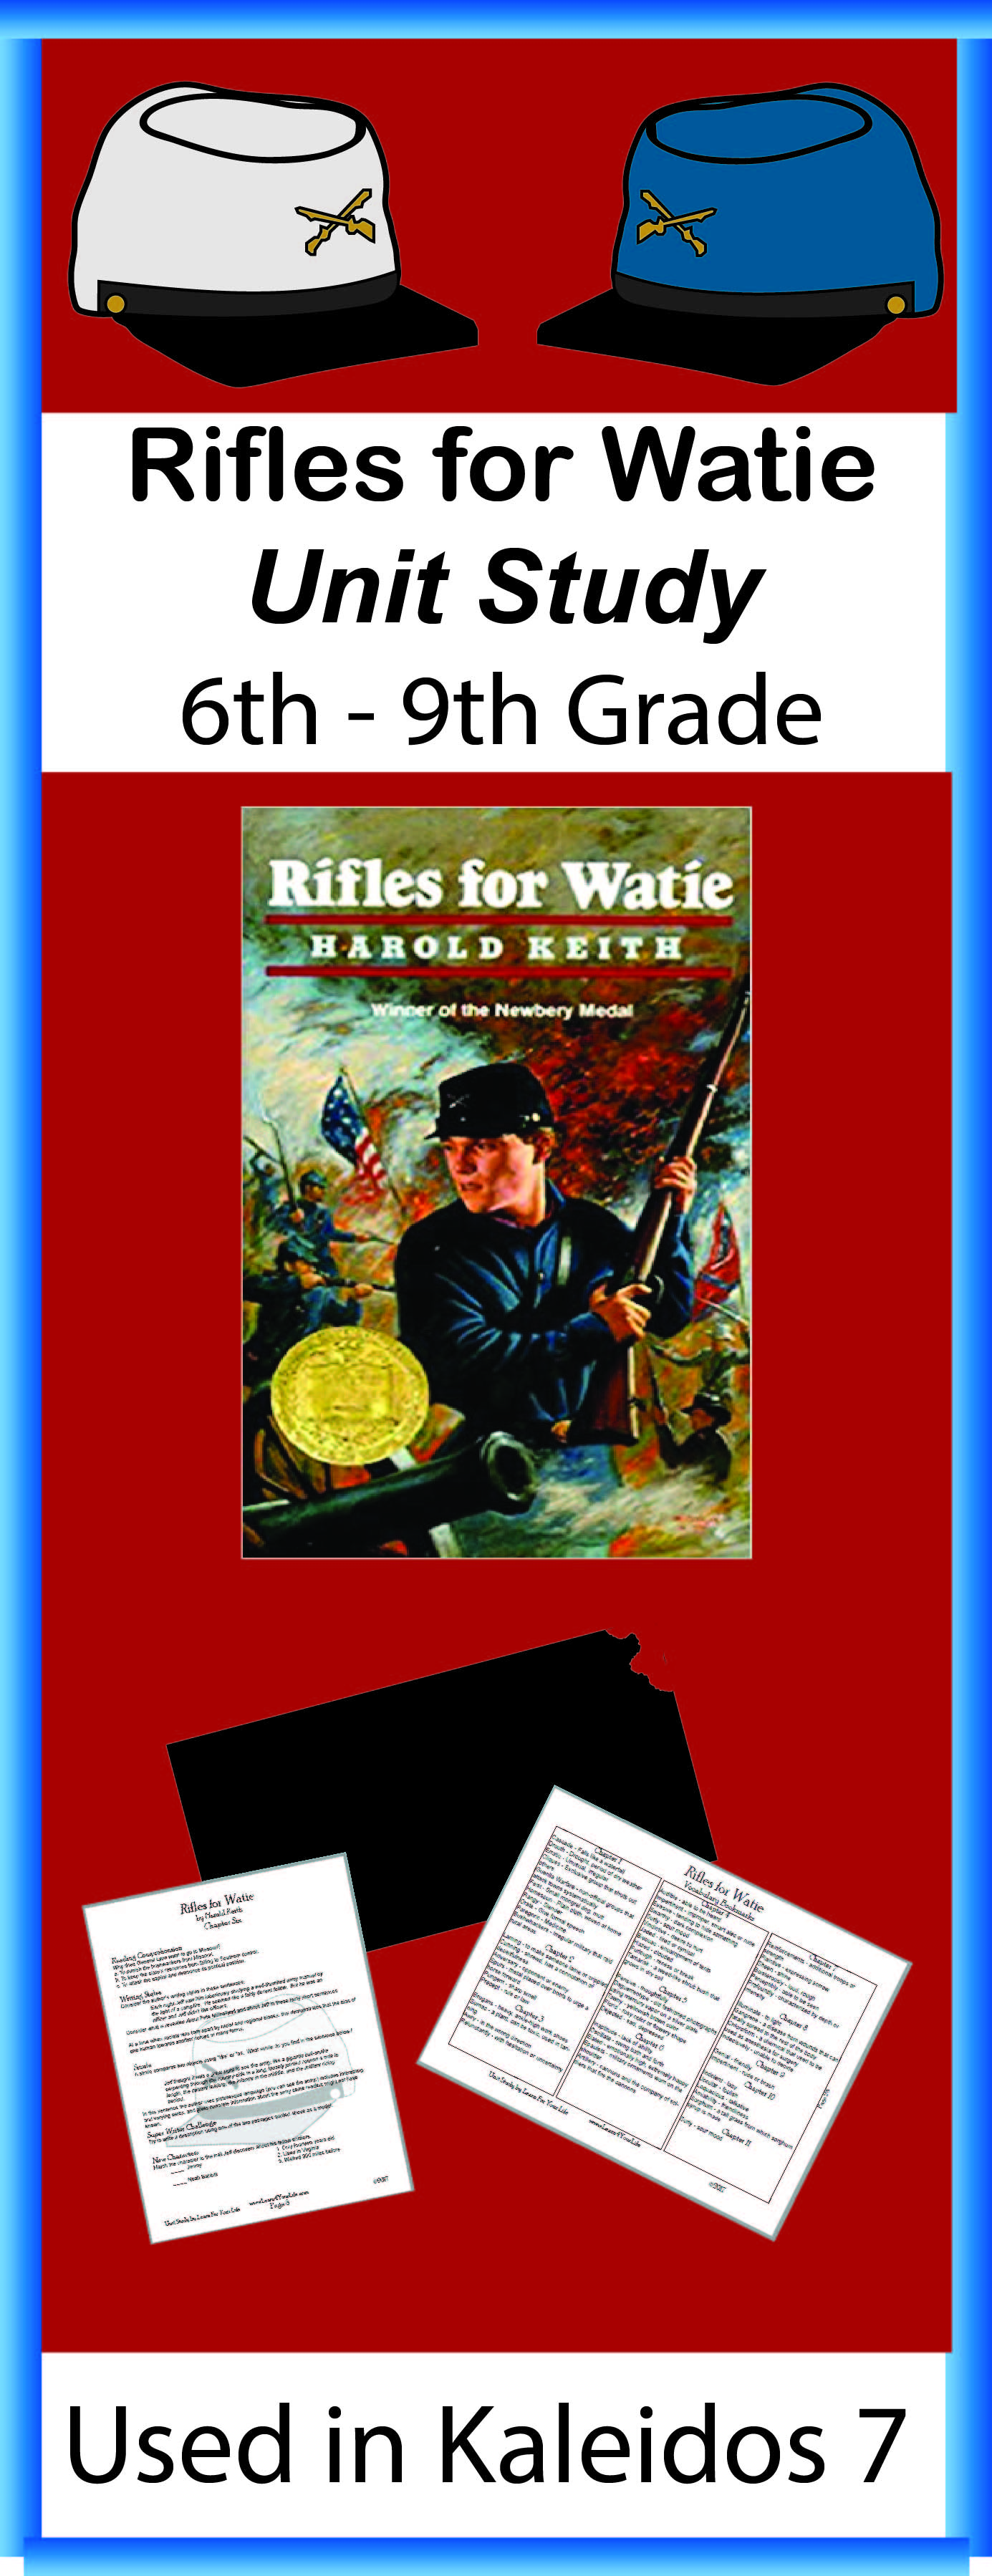 Rifles for Watie Unit Study Poster